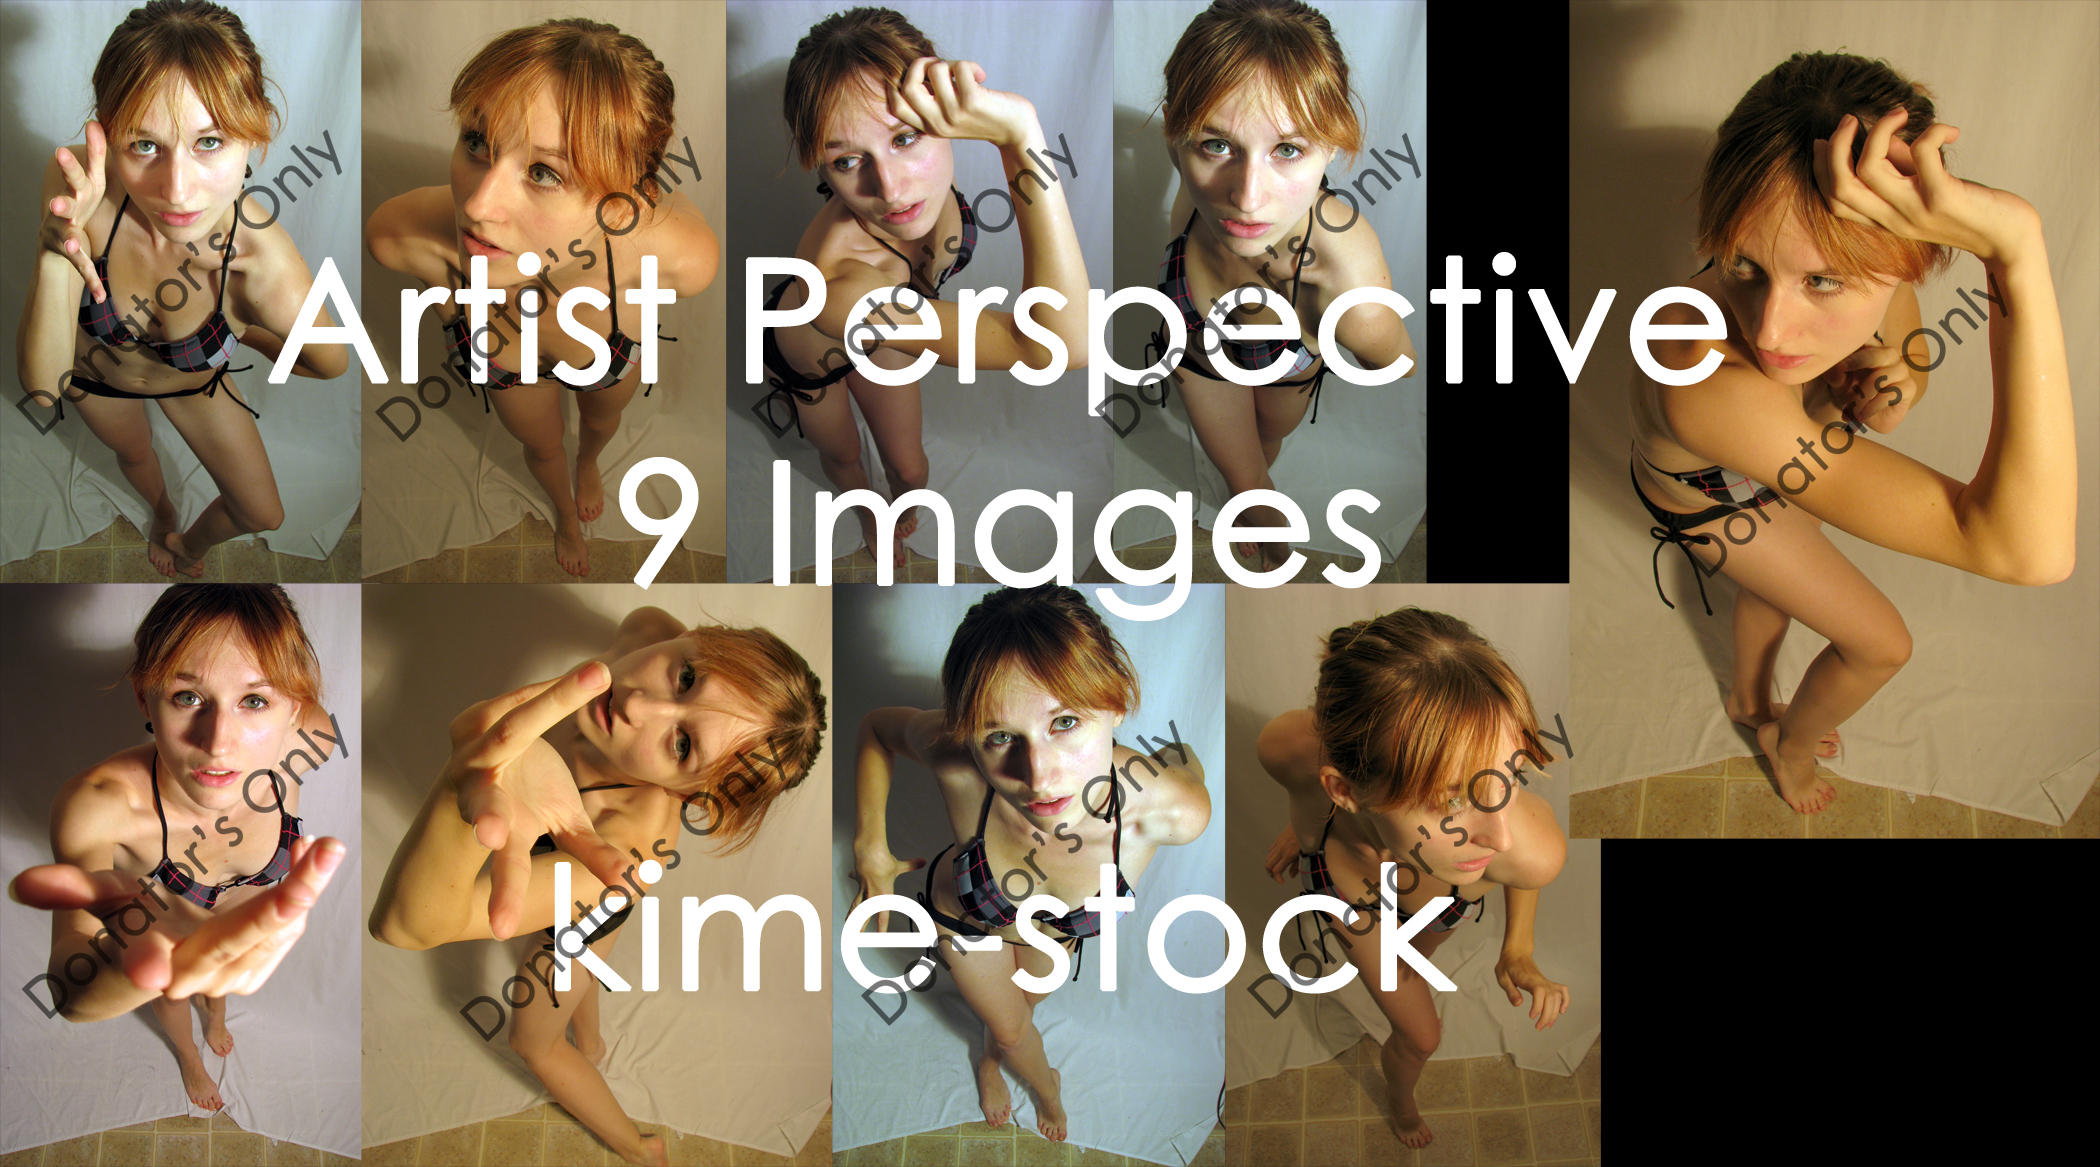 Artist Perspective 2 by kime-stock